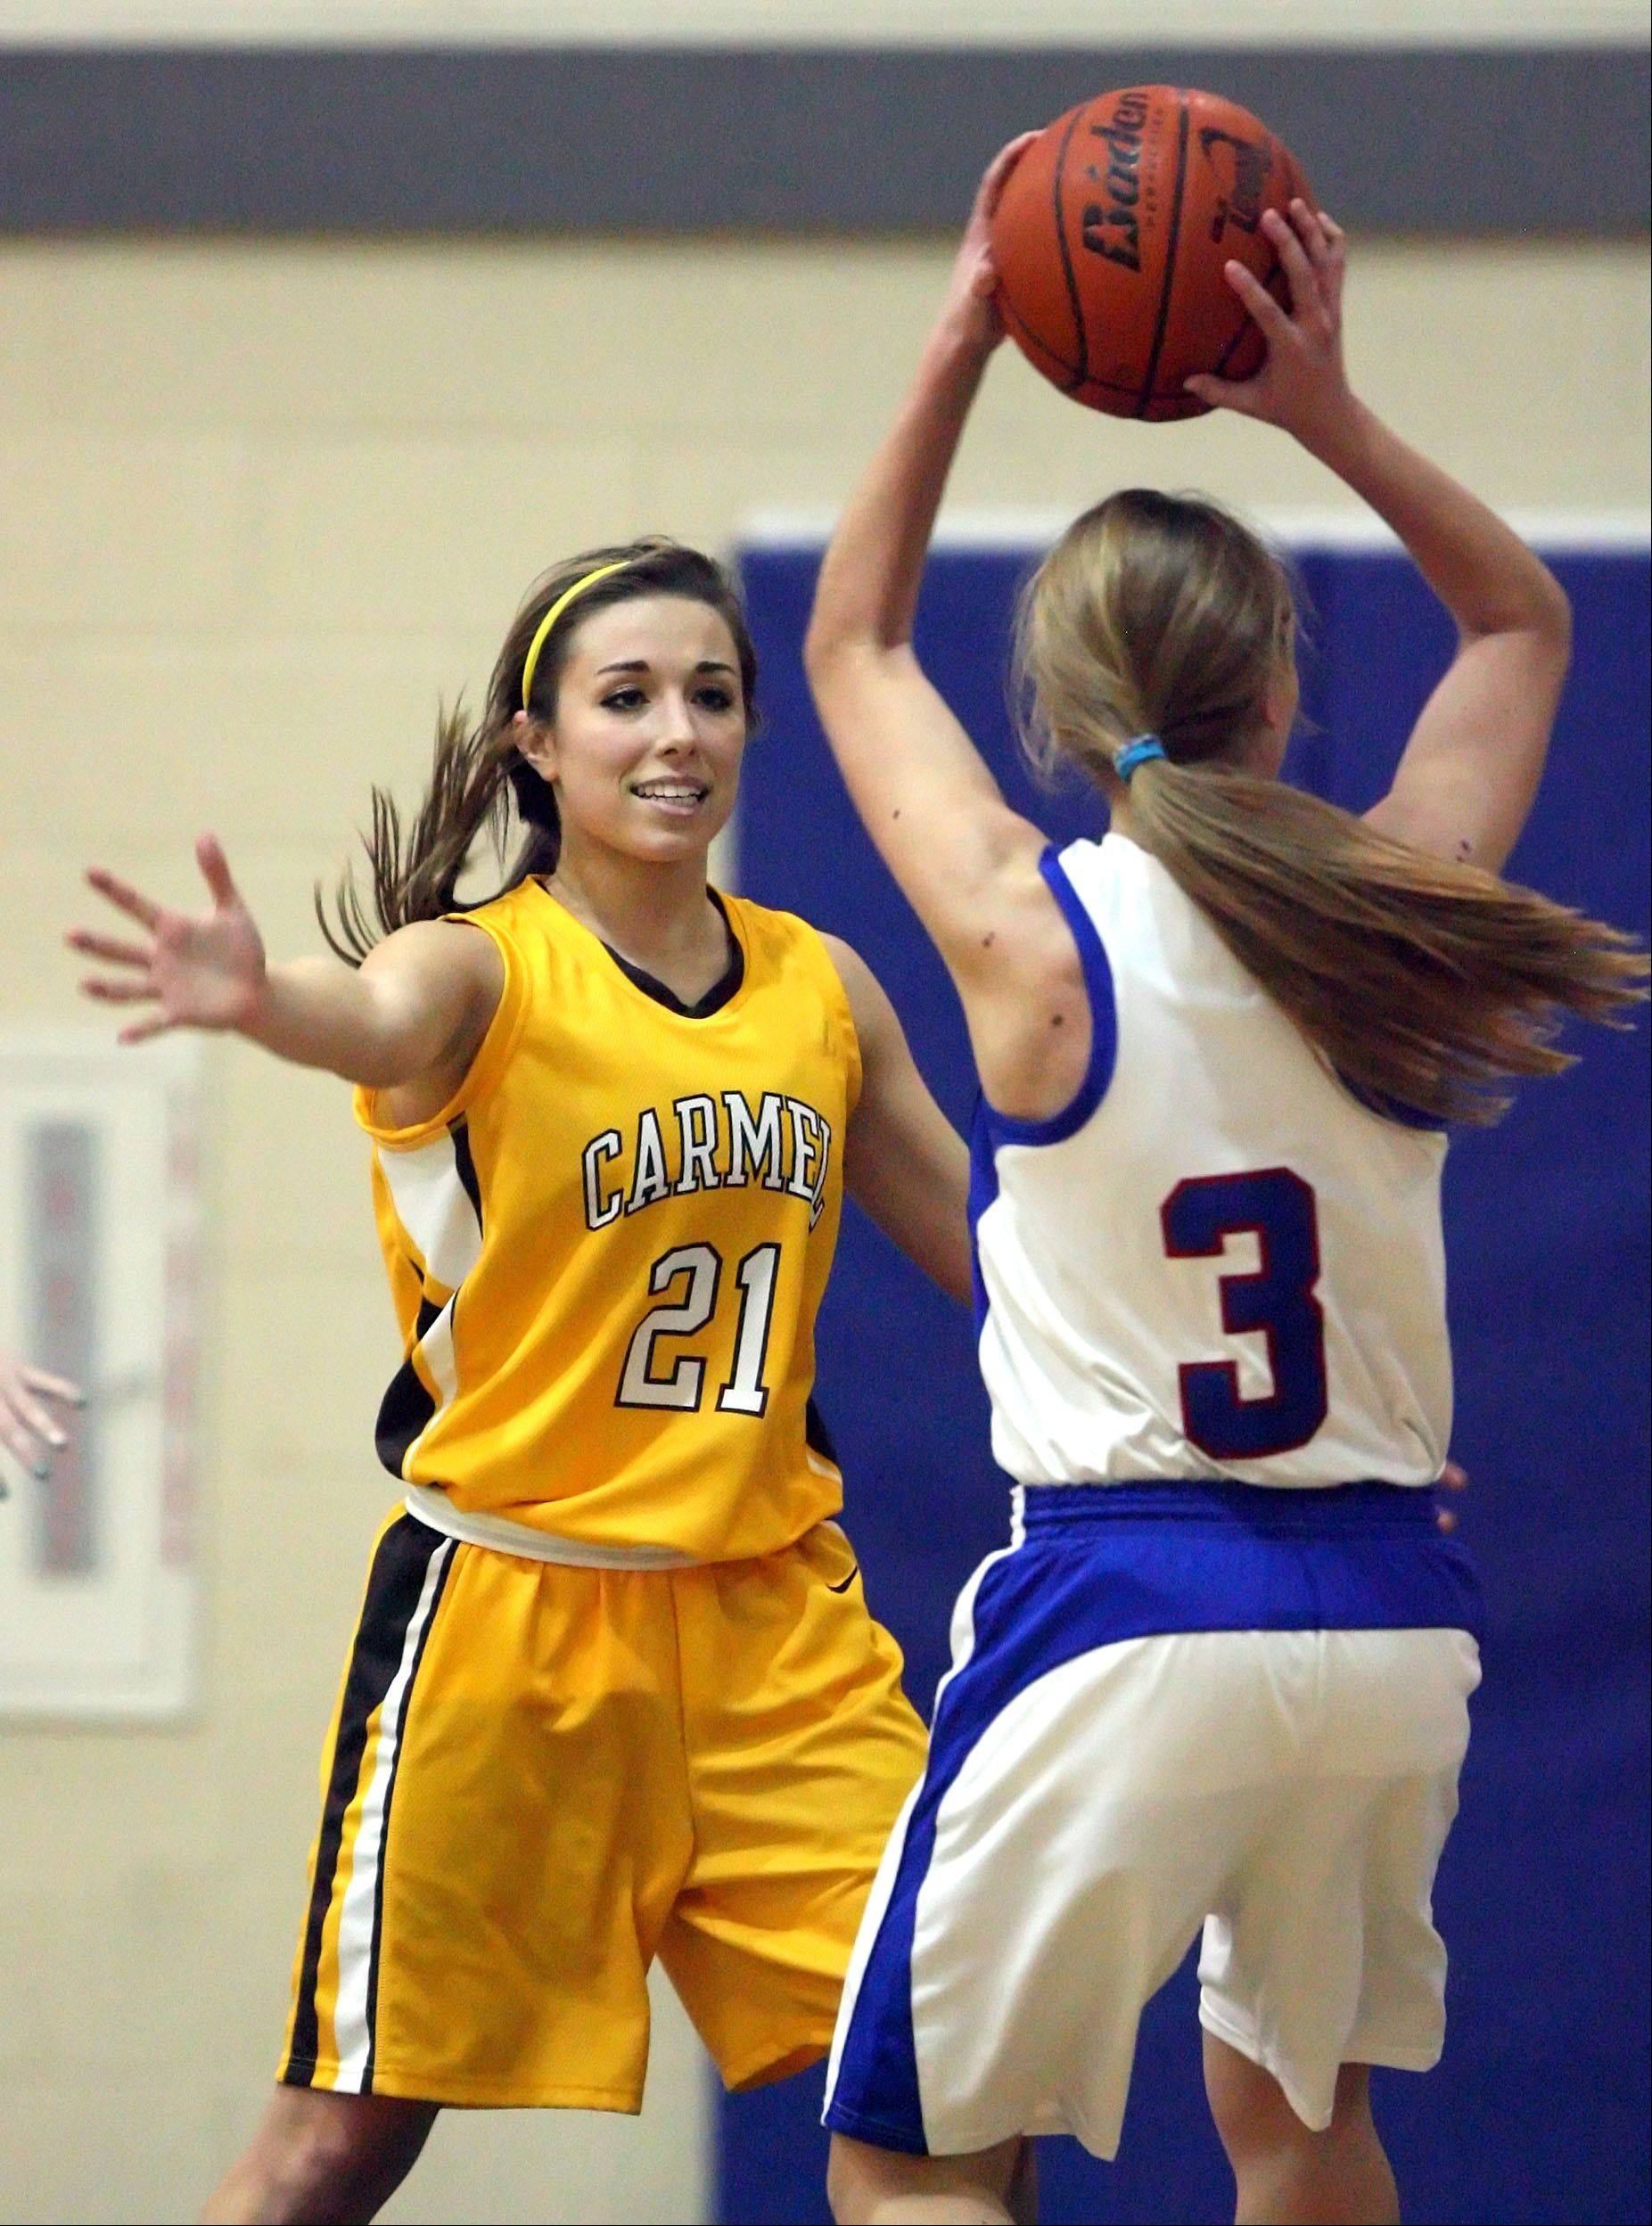 Carmel's Nicole Bitter, left, defends against Lakes' Heather Hurlbut.